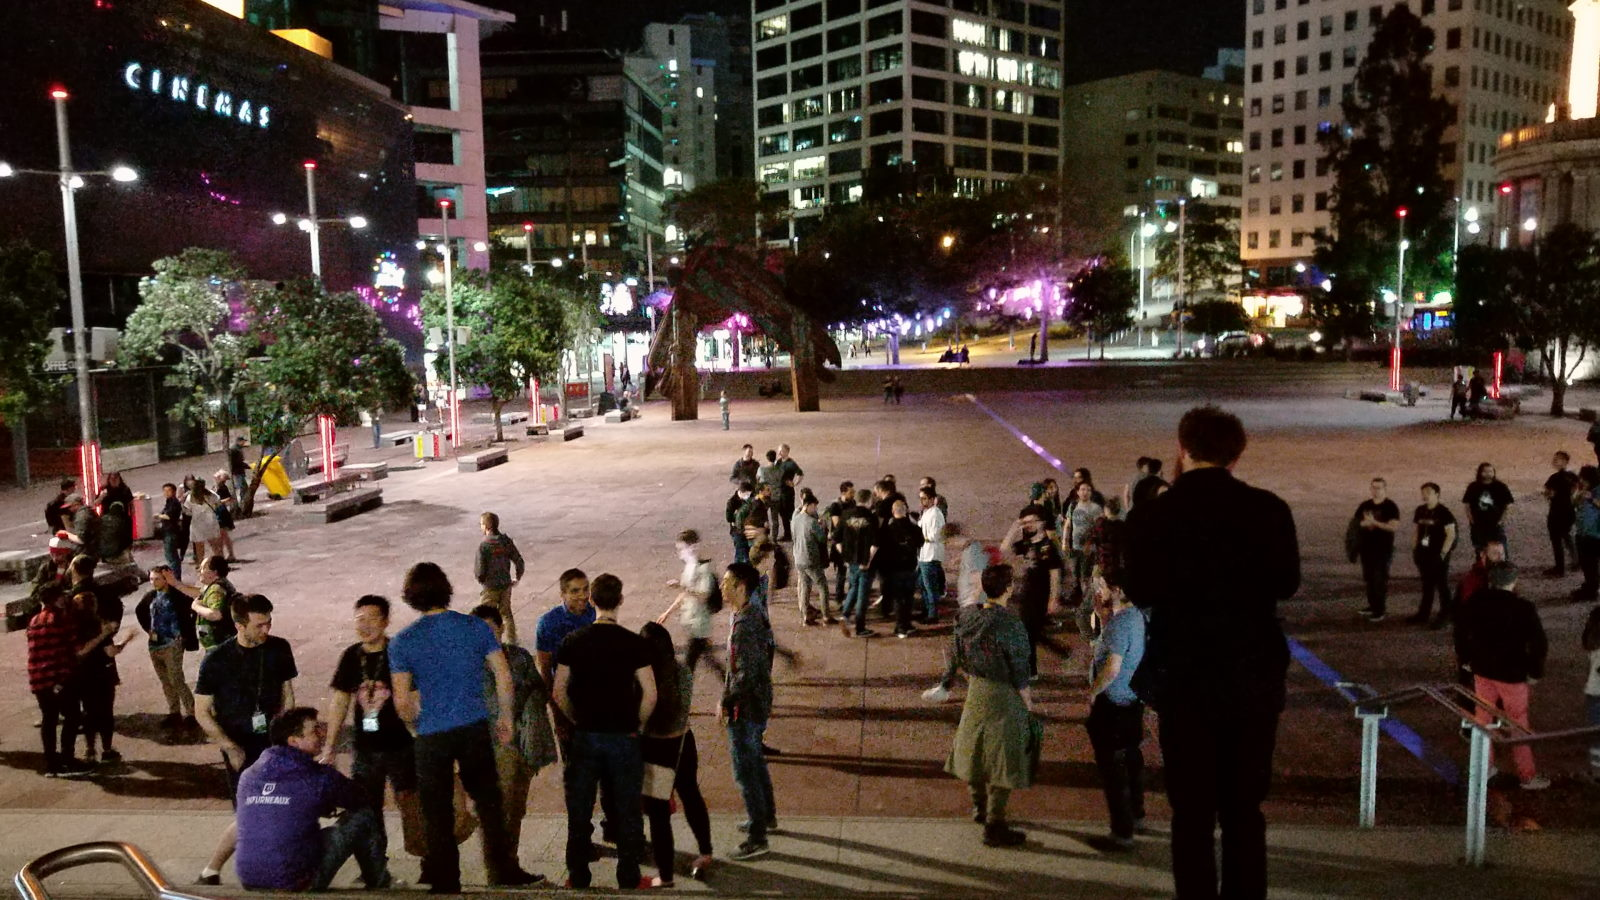 The crowd make their way into the warm New Zealand evening, with many promising to meet again next time.